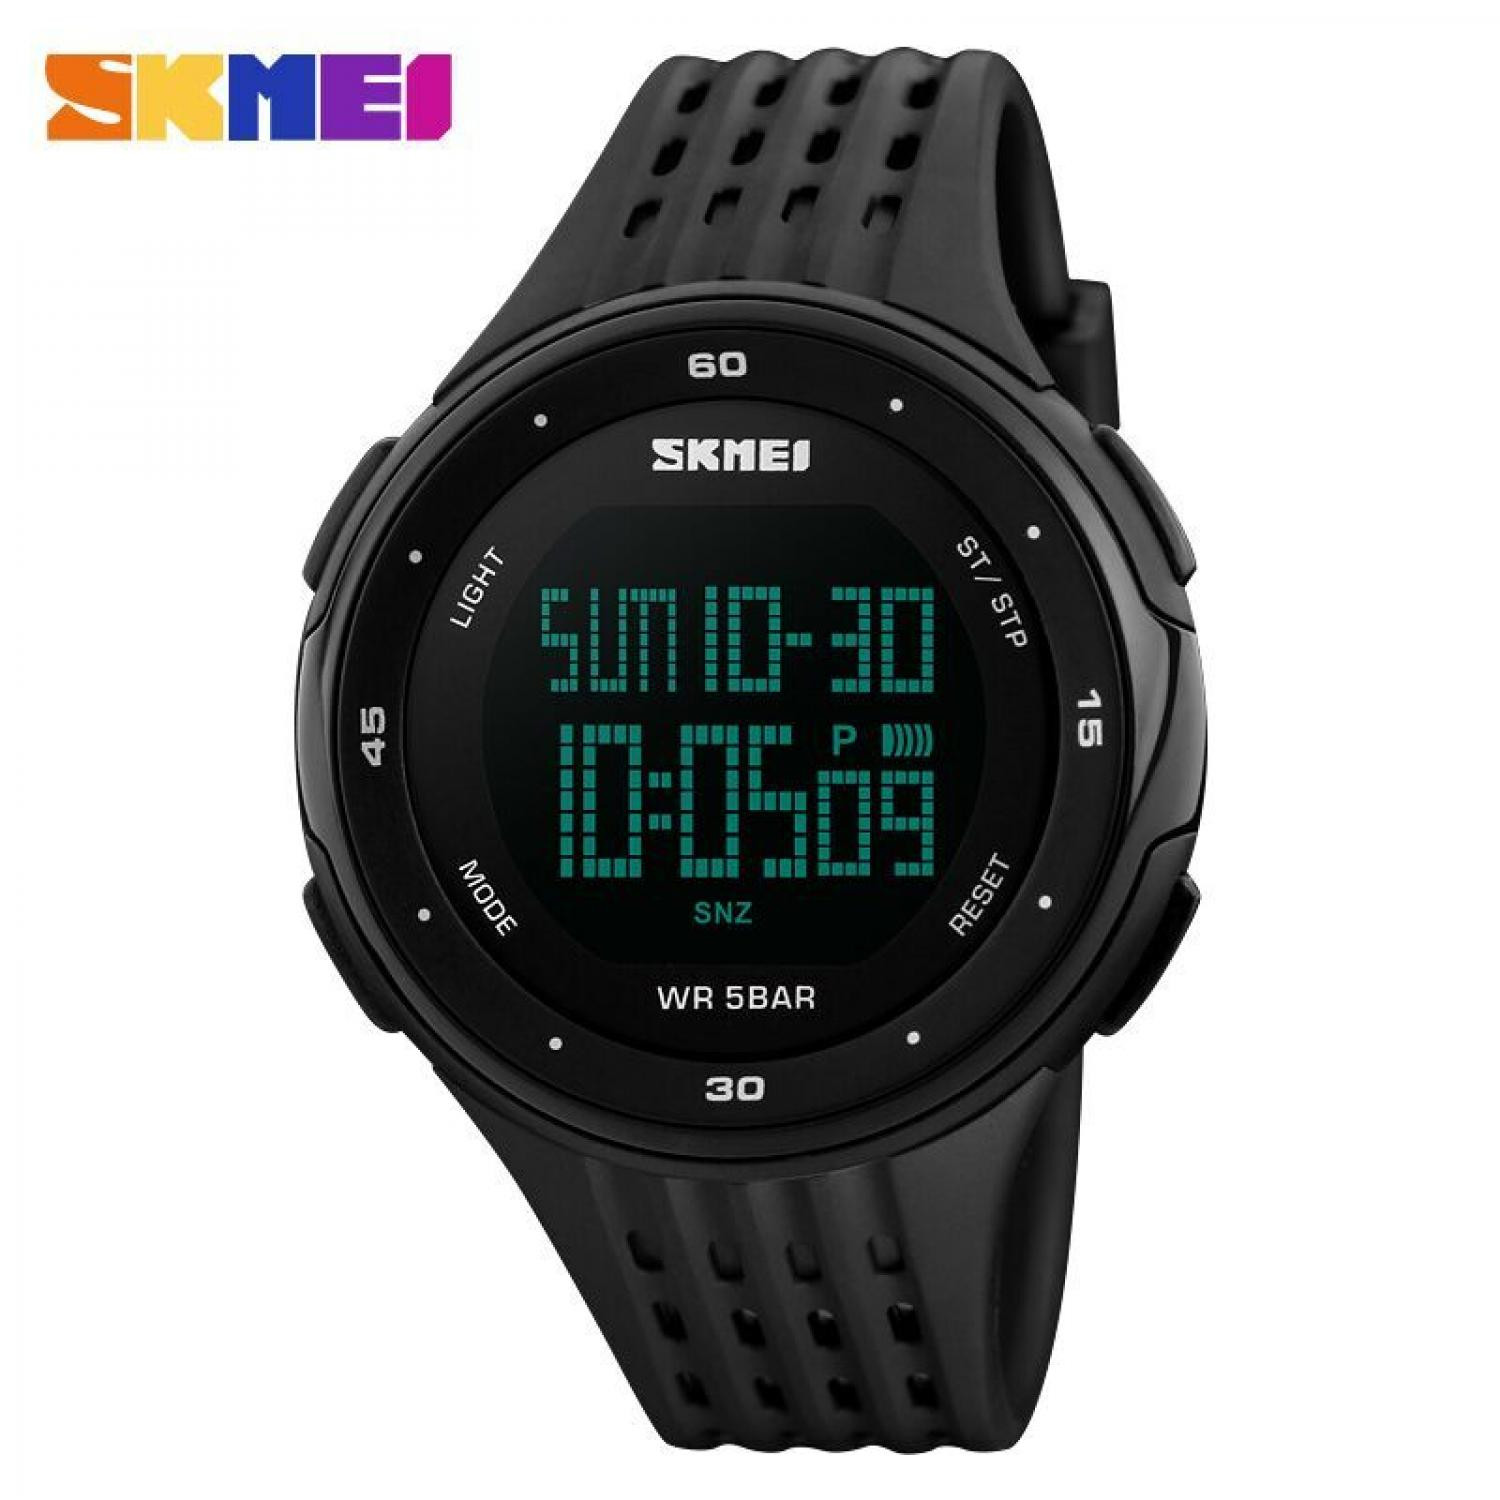 6f8b138805b Jam Tangan Pria Digital SKMEI Sport LED Watch Original DG1219